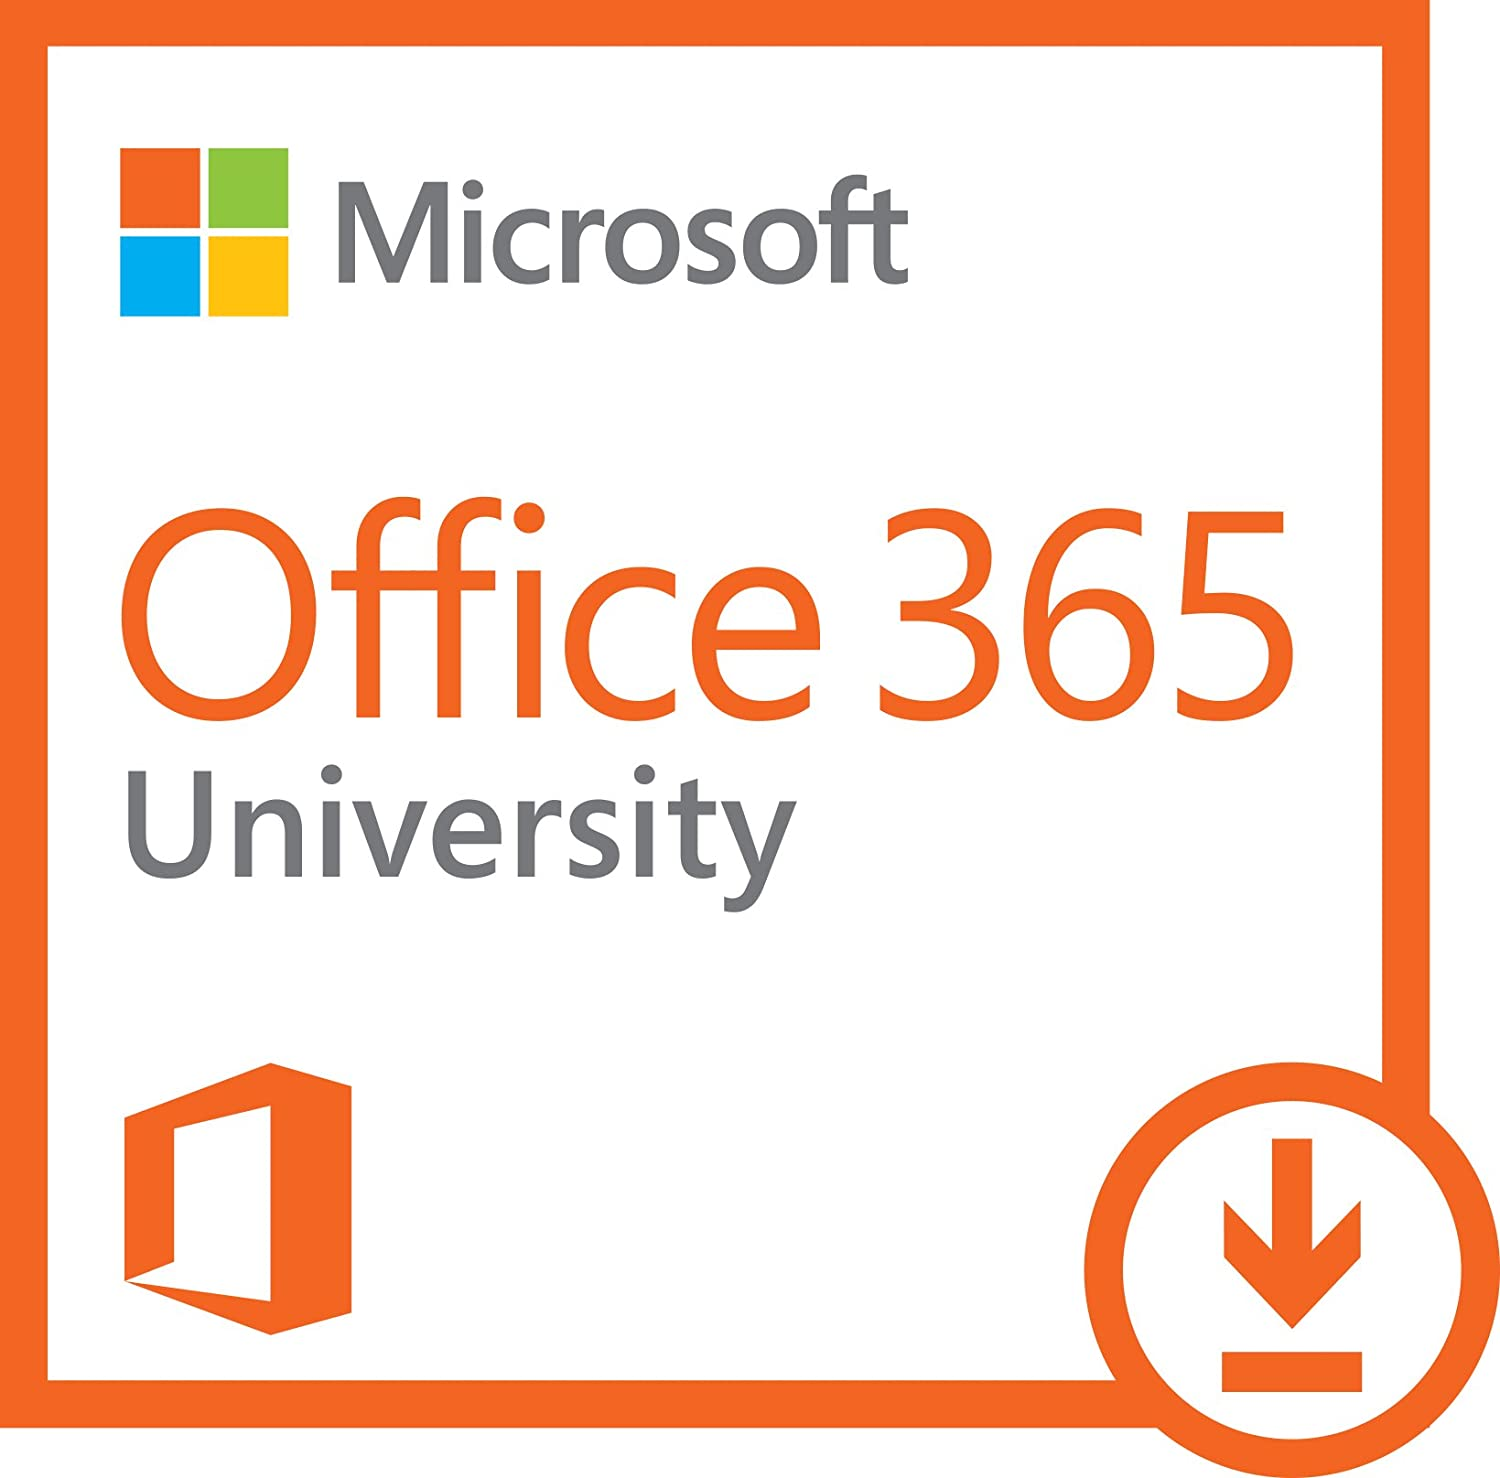 Amazon.com: Microsoft Office 365 University 4 Year | PC or Mac ...